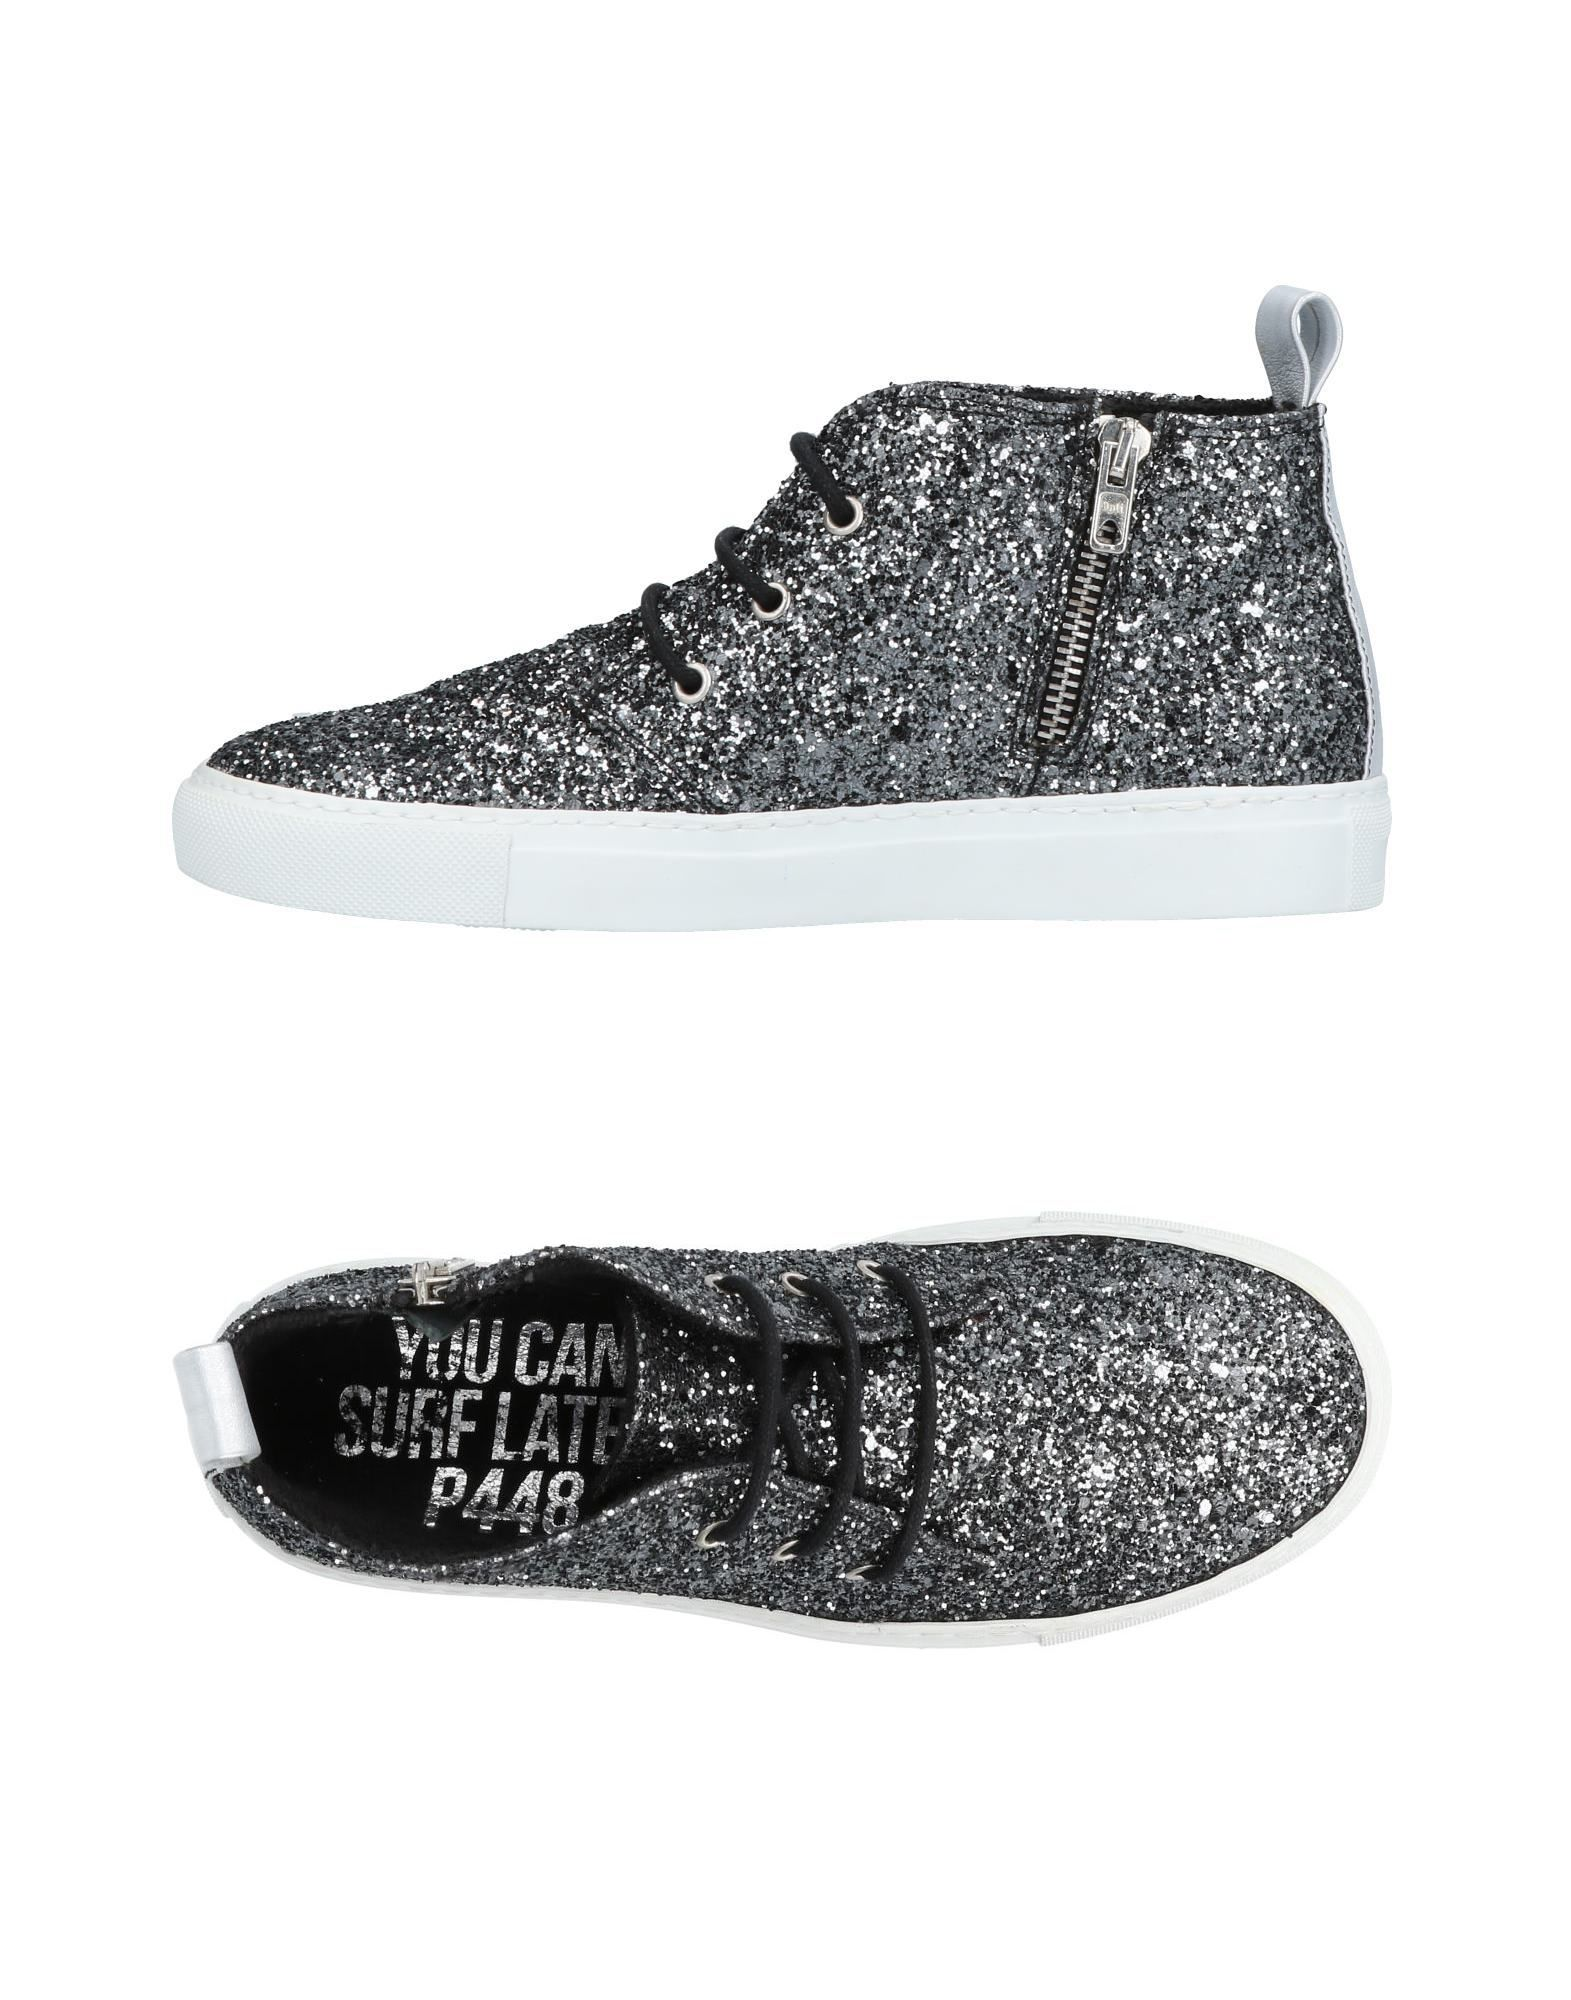 Moda Sneakers P448 P448 Sneakers Donna - 11421179AG 652b7c